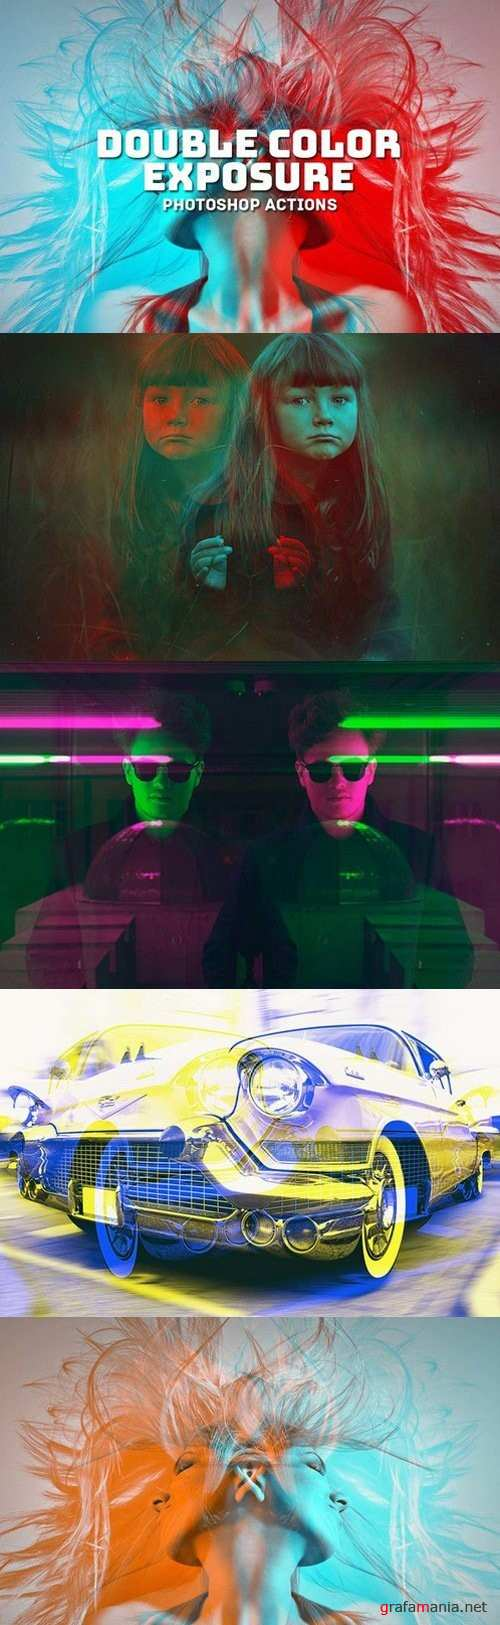 Double Color Exposure Actions - 973687